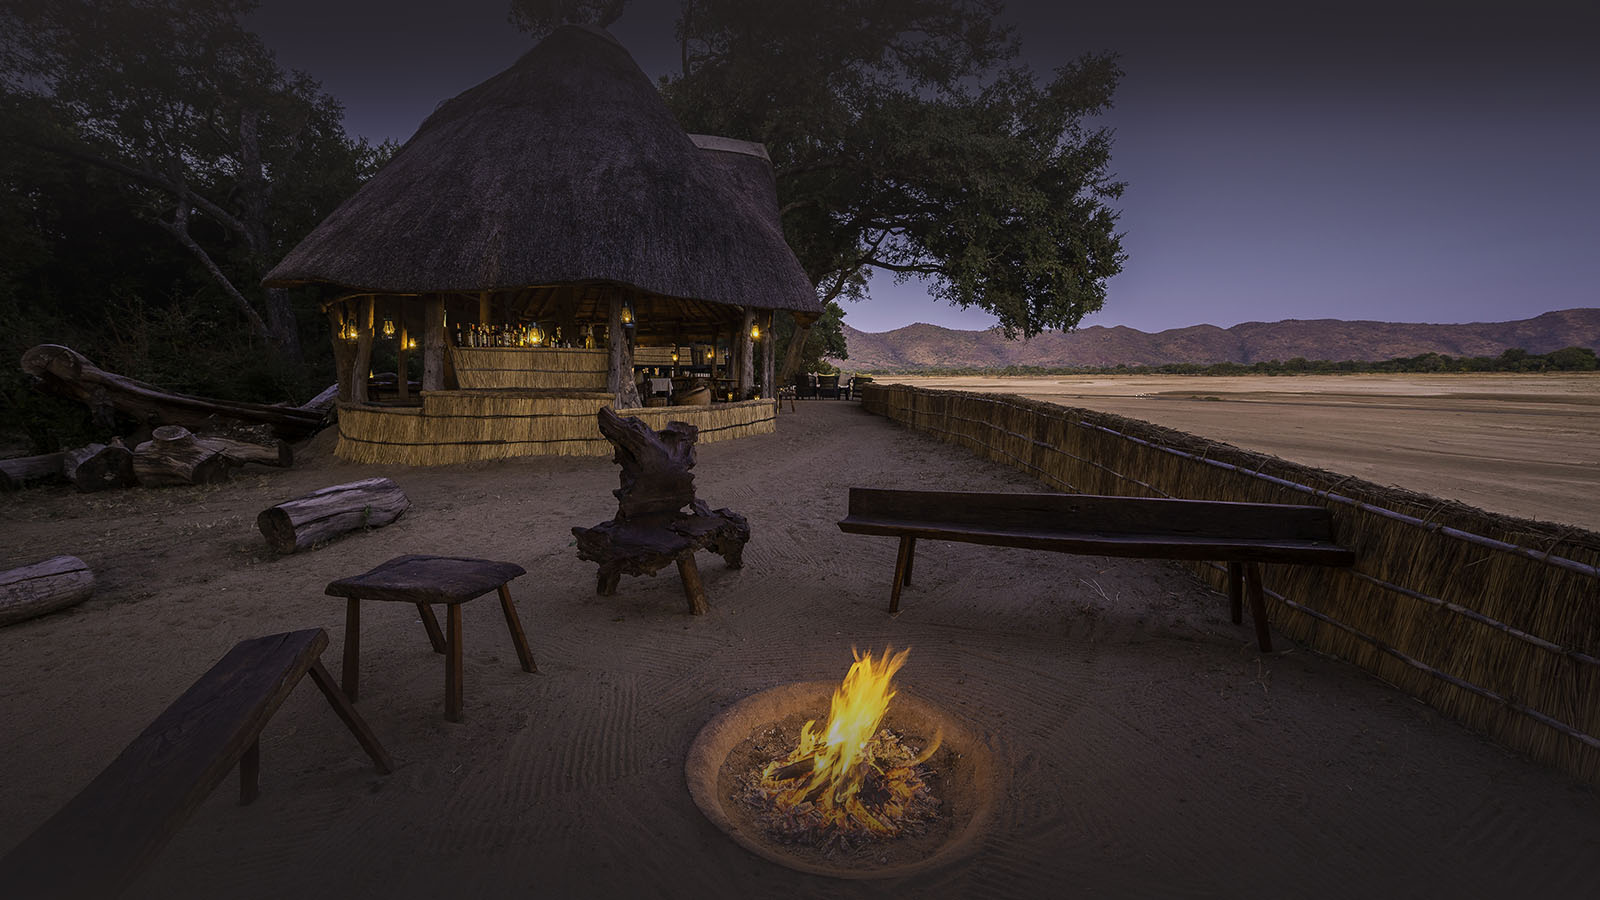 chamilandu bush camp zambia-in-style-tours-safari-packages-lodges-explore-south-luangwa-travel-zambia-lodges-campfire